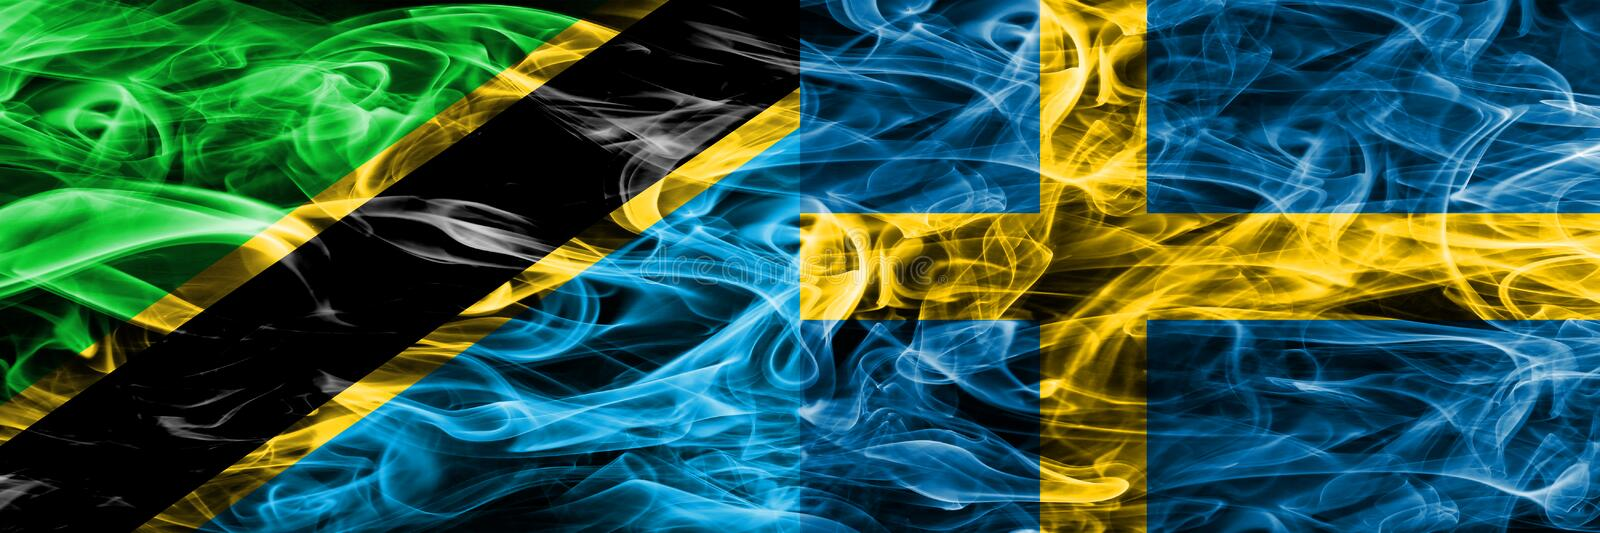 Tanzania vs Sweden, Swedish smoke flags placed side by side. Thick colored silky smoke flags of Tanzanian and Sweden, Swedish stock image